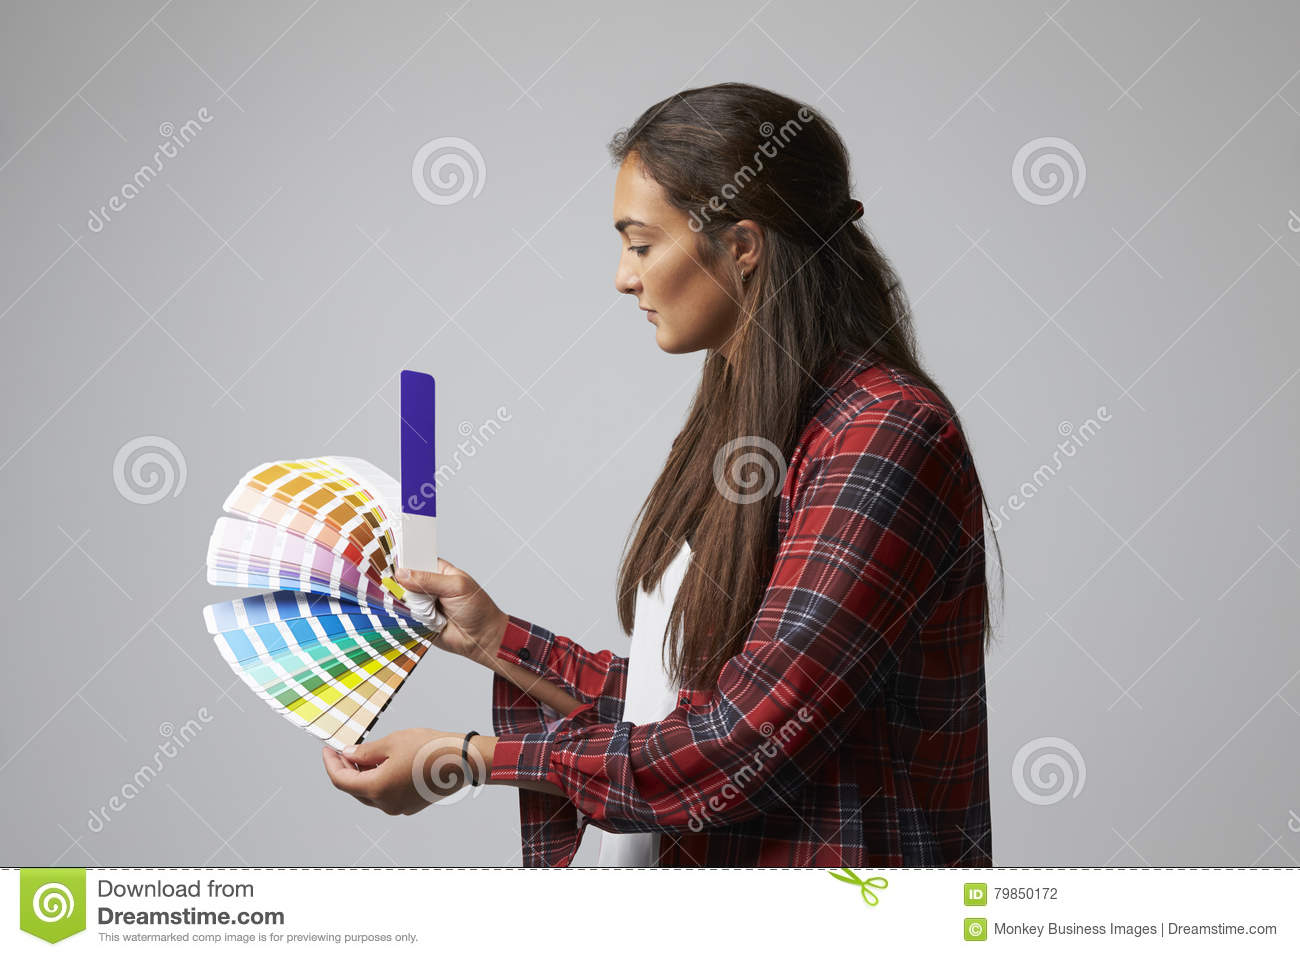 Studio Shot Of Female Graphic Designer With Color Swatches